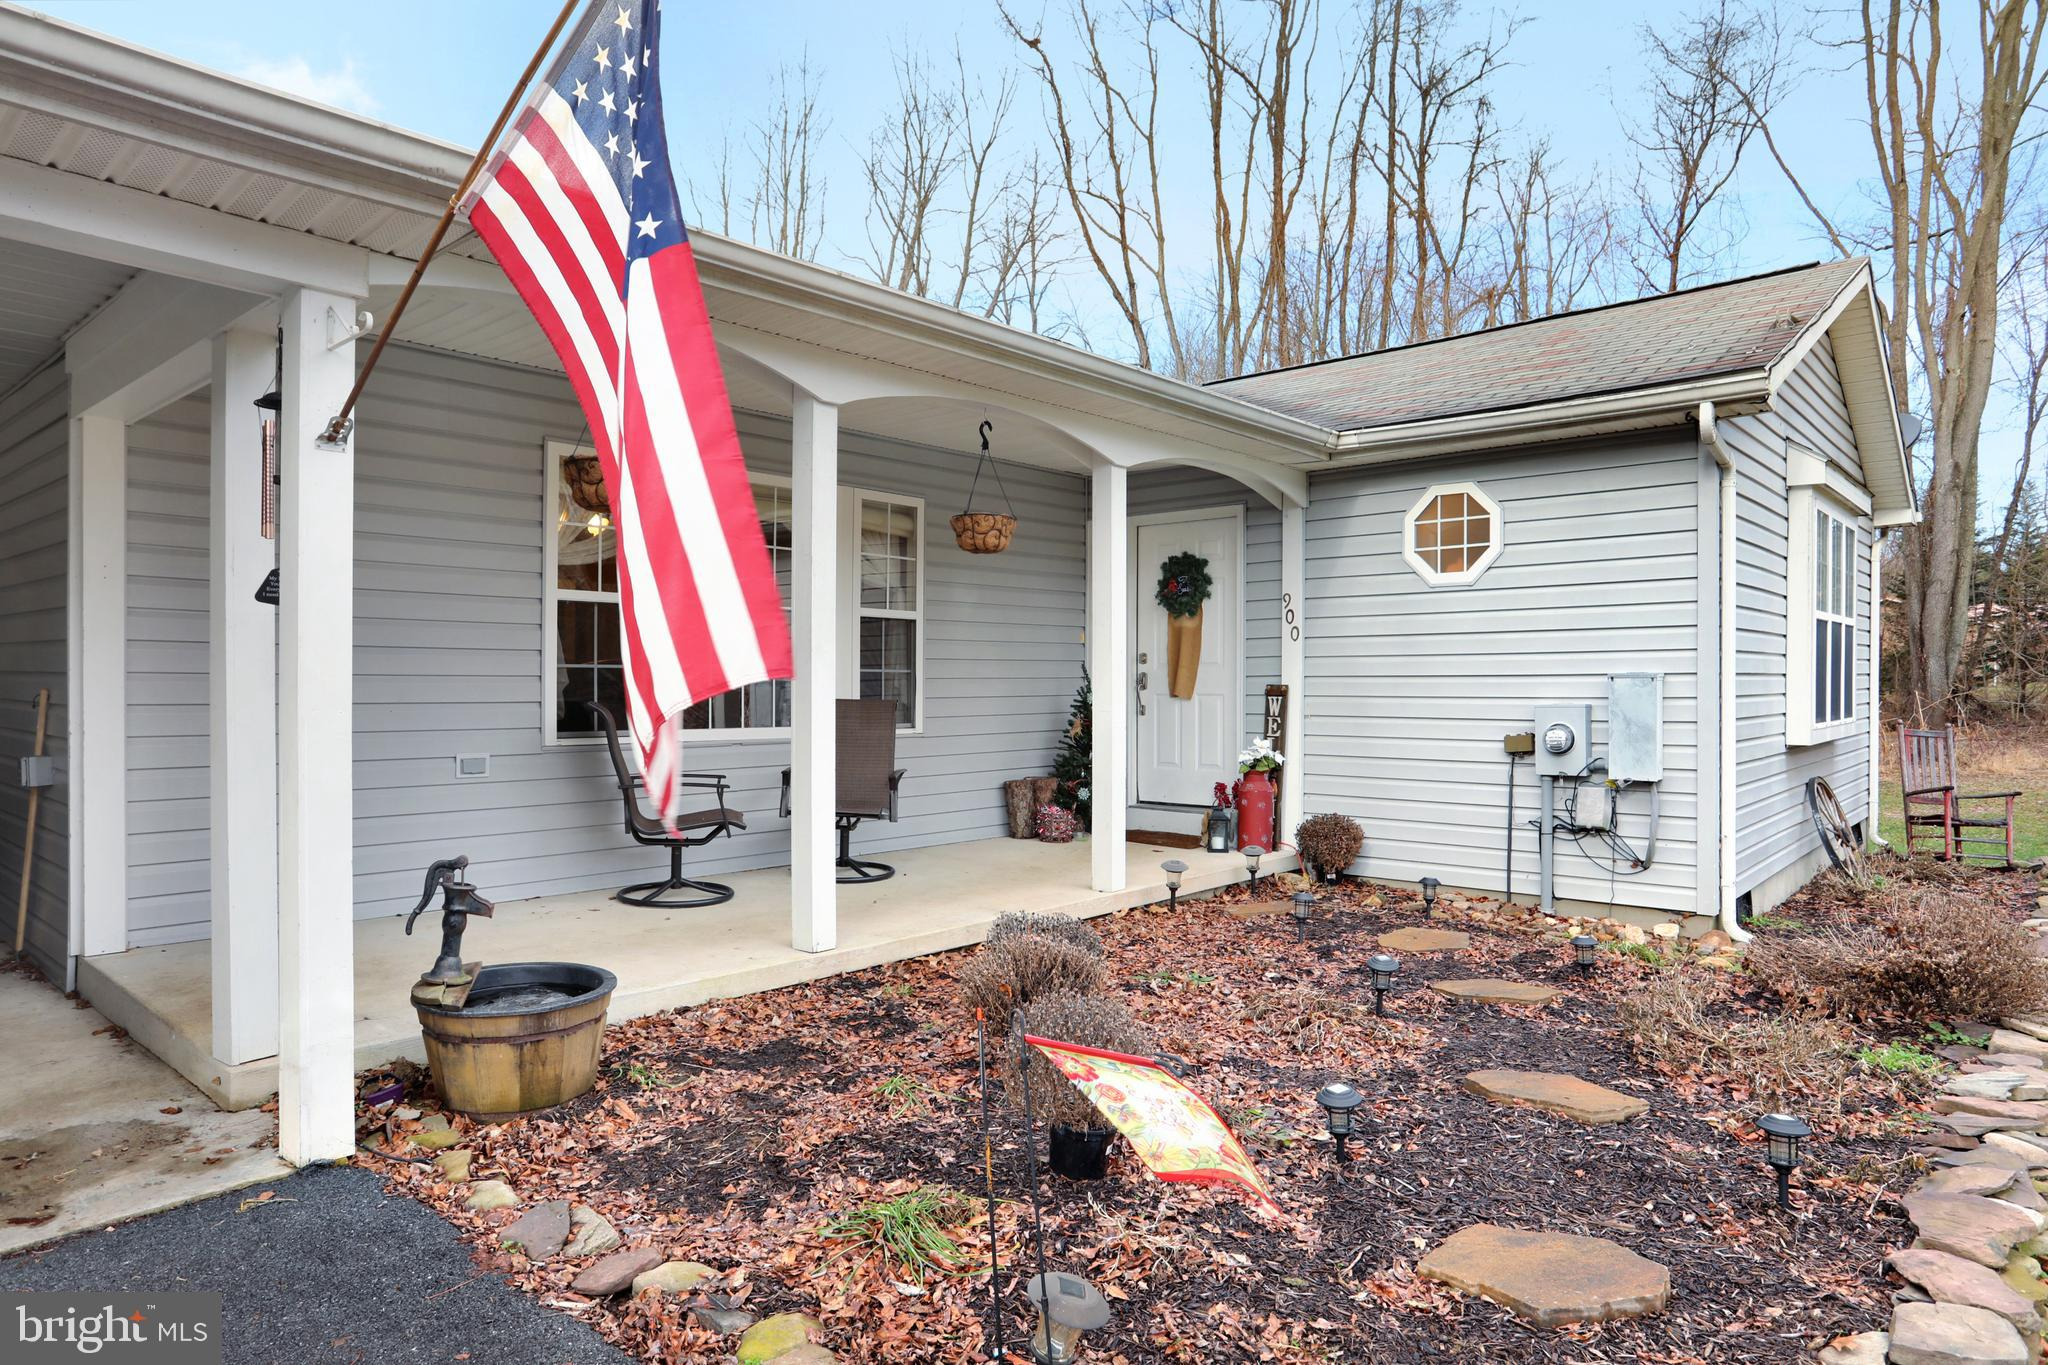 OPEN HOUSE SUNDAY 2/24 FROM 1-4p.m!This cozy and comfortable rancher is loaded with so many great am